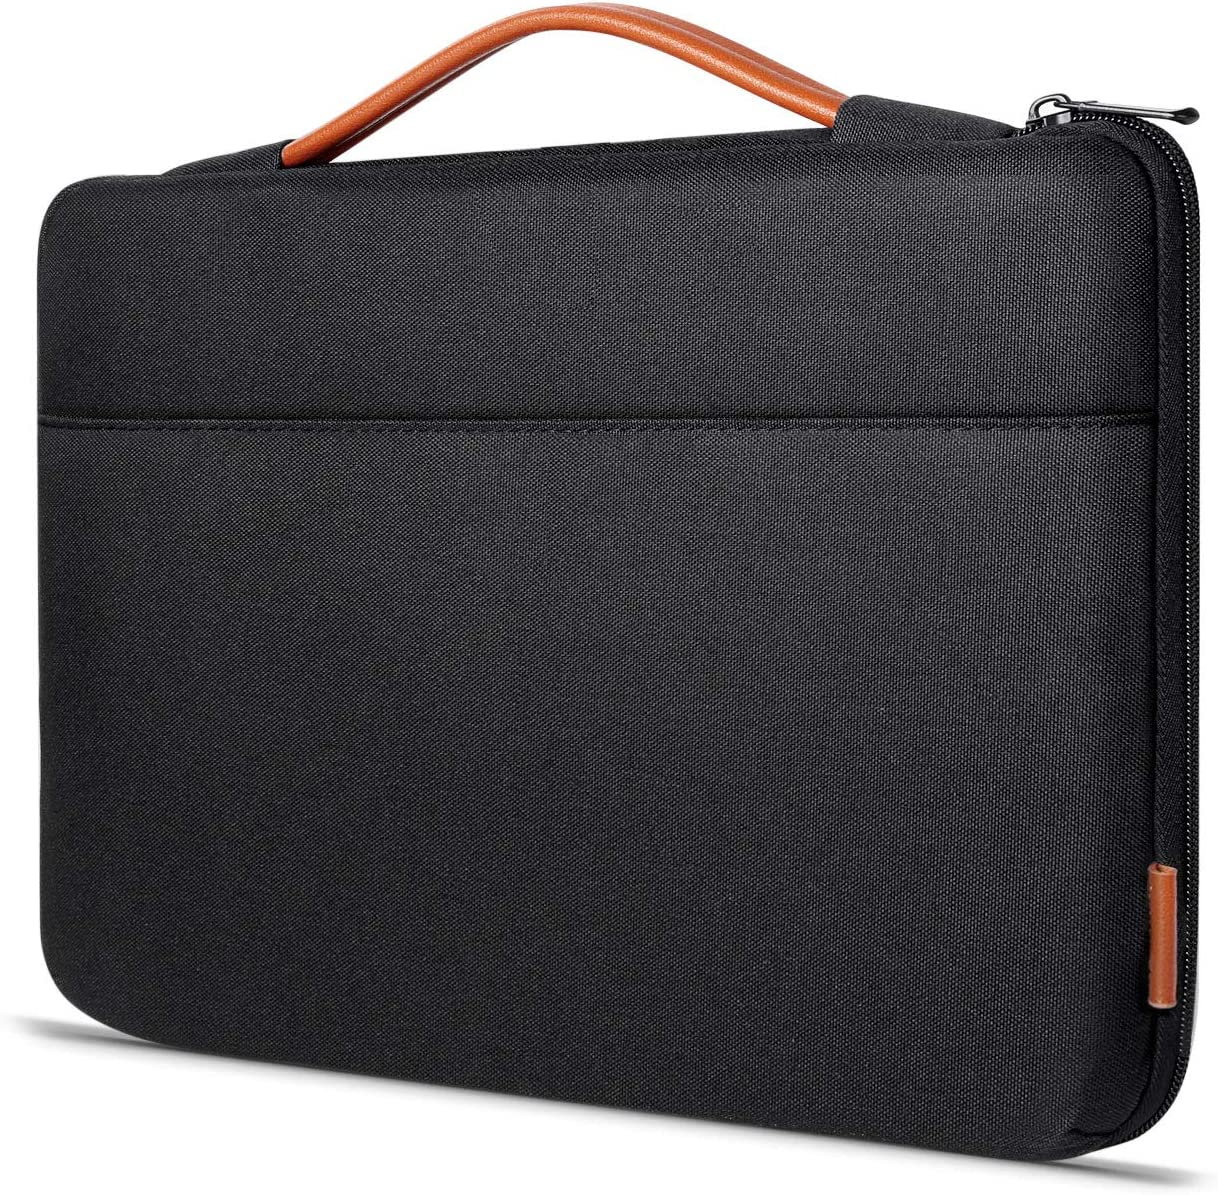 Inateck 14-14.1 Inch Laptop Sleeve Case Briefcase Compatible with 14-14.1'' Laptop,15'' MacBook Pro 2018/2017/2016, 2020 Dell XPS 15, Notebooks, Chromebooks, Black